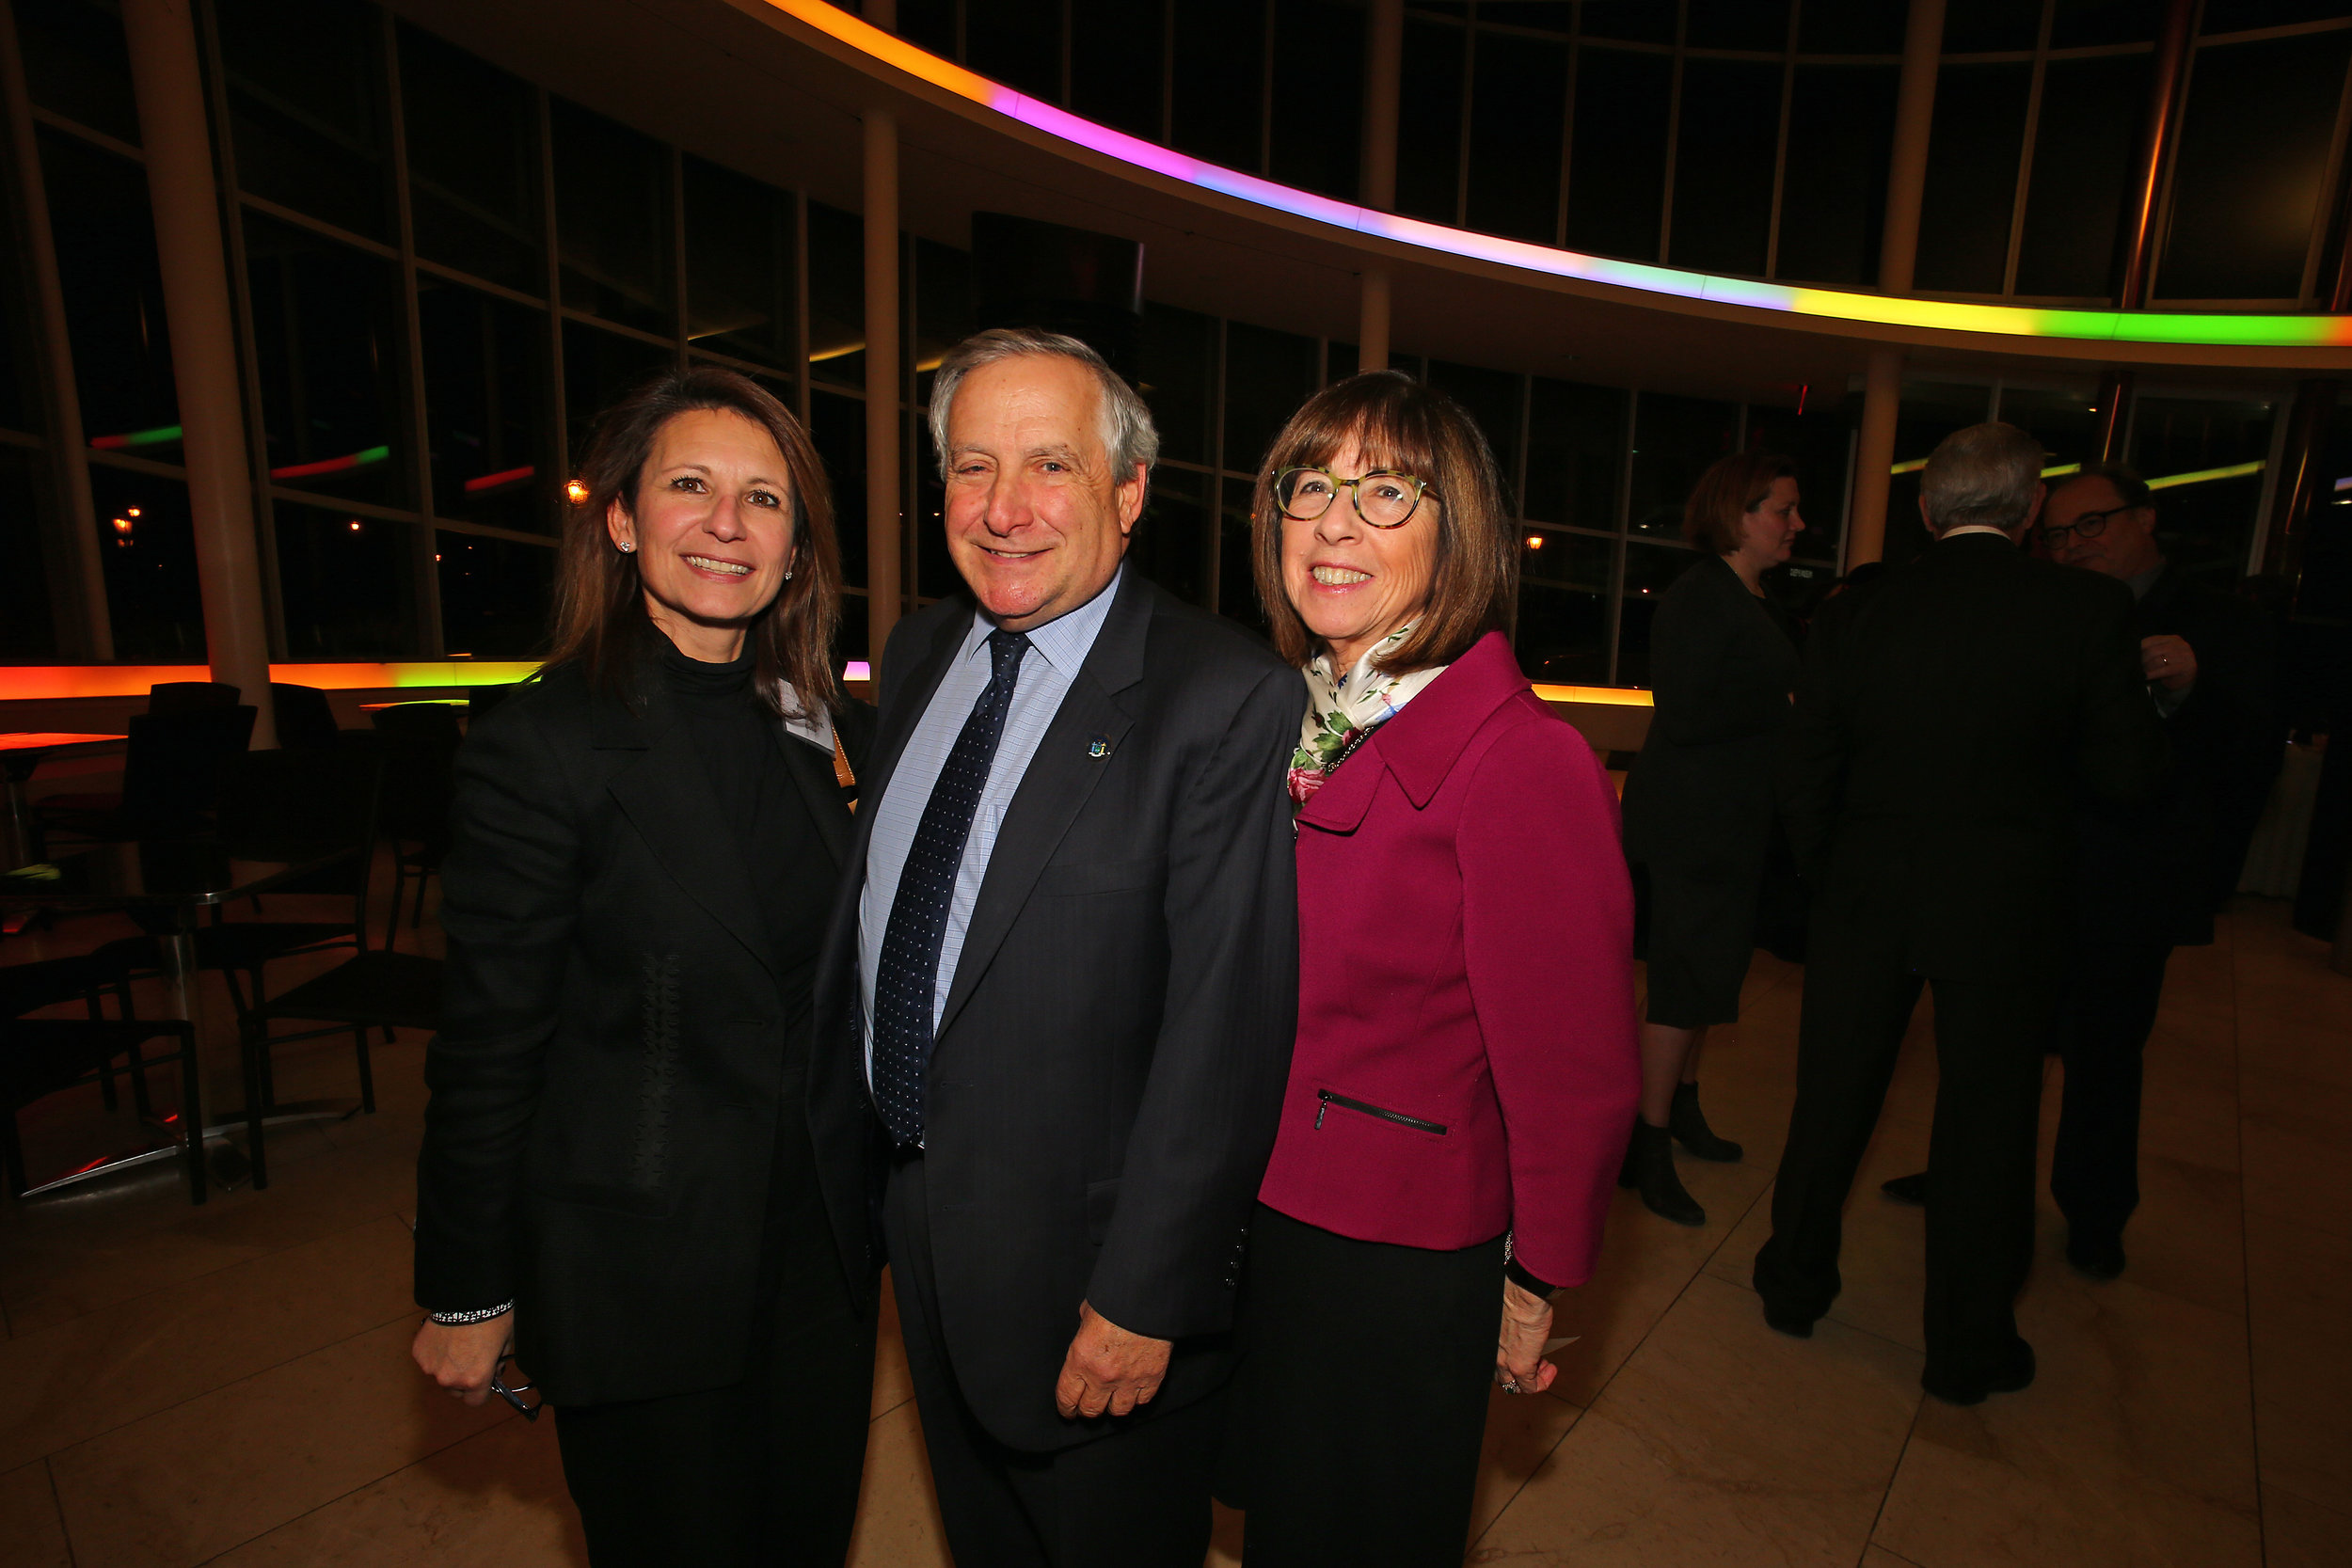 From left, the Judge Donna-Marie E. Golia, Judge Jeremy S. Weinstein and Judge Bernice Siegal.